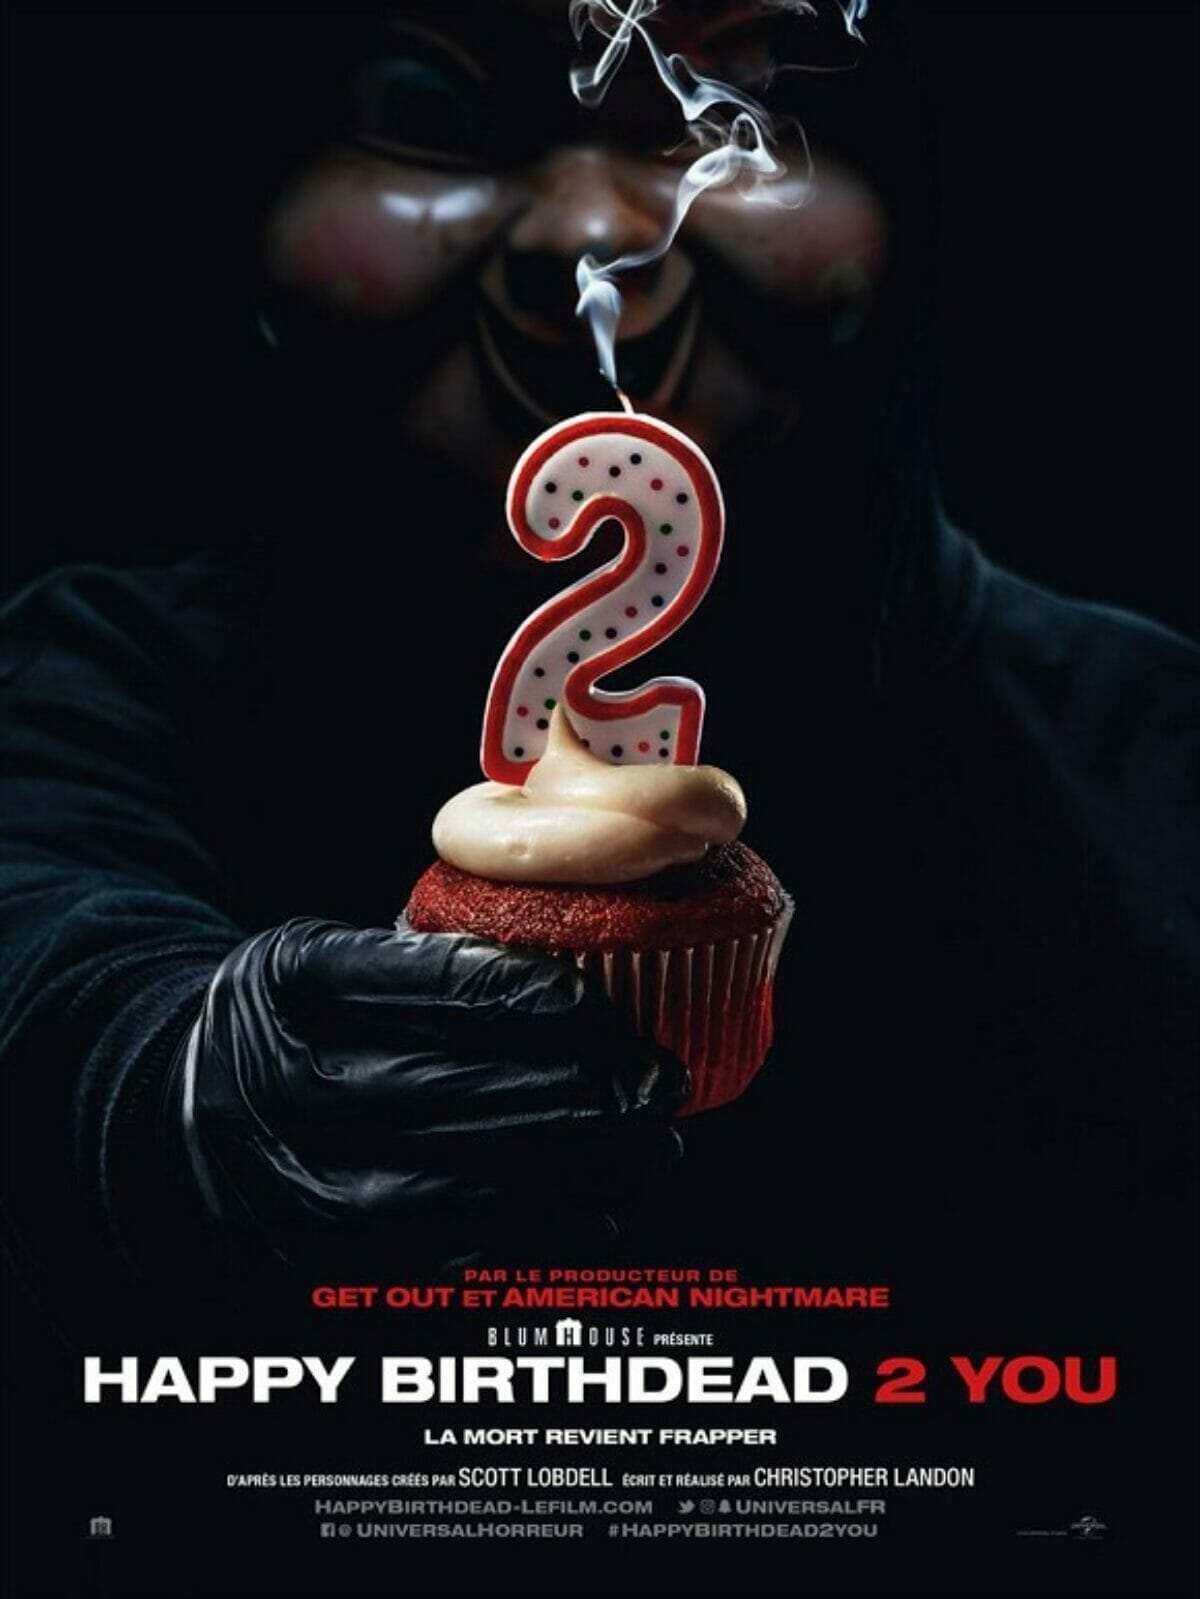 Happy-Birthdead-2-you-poster